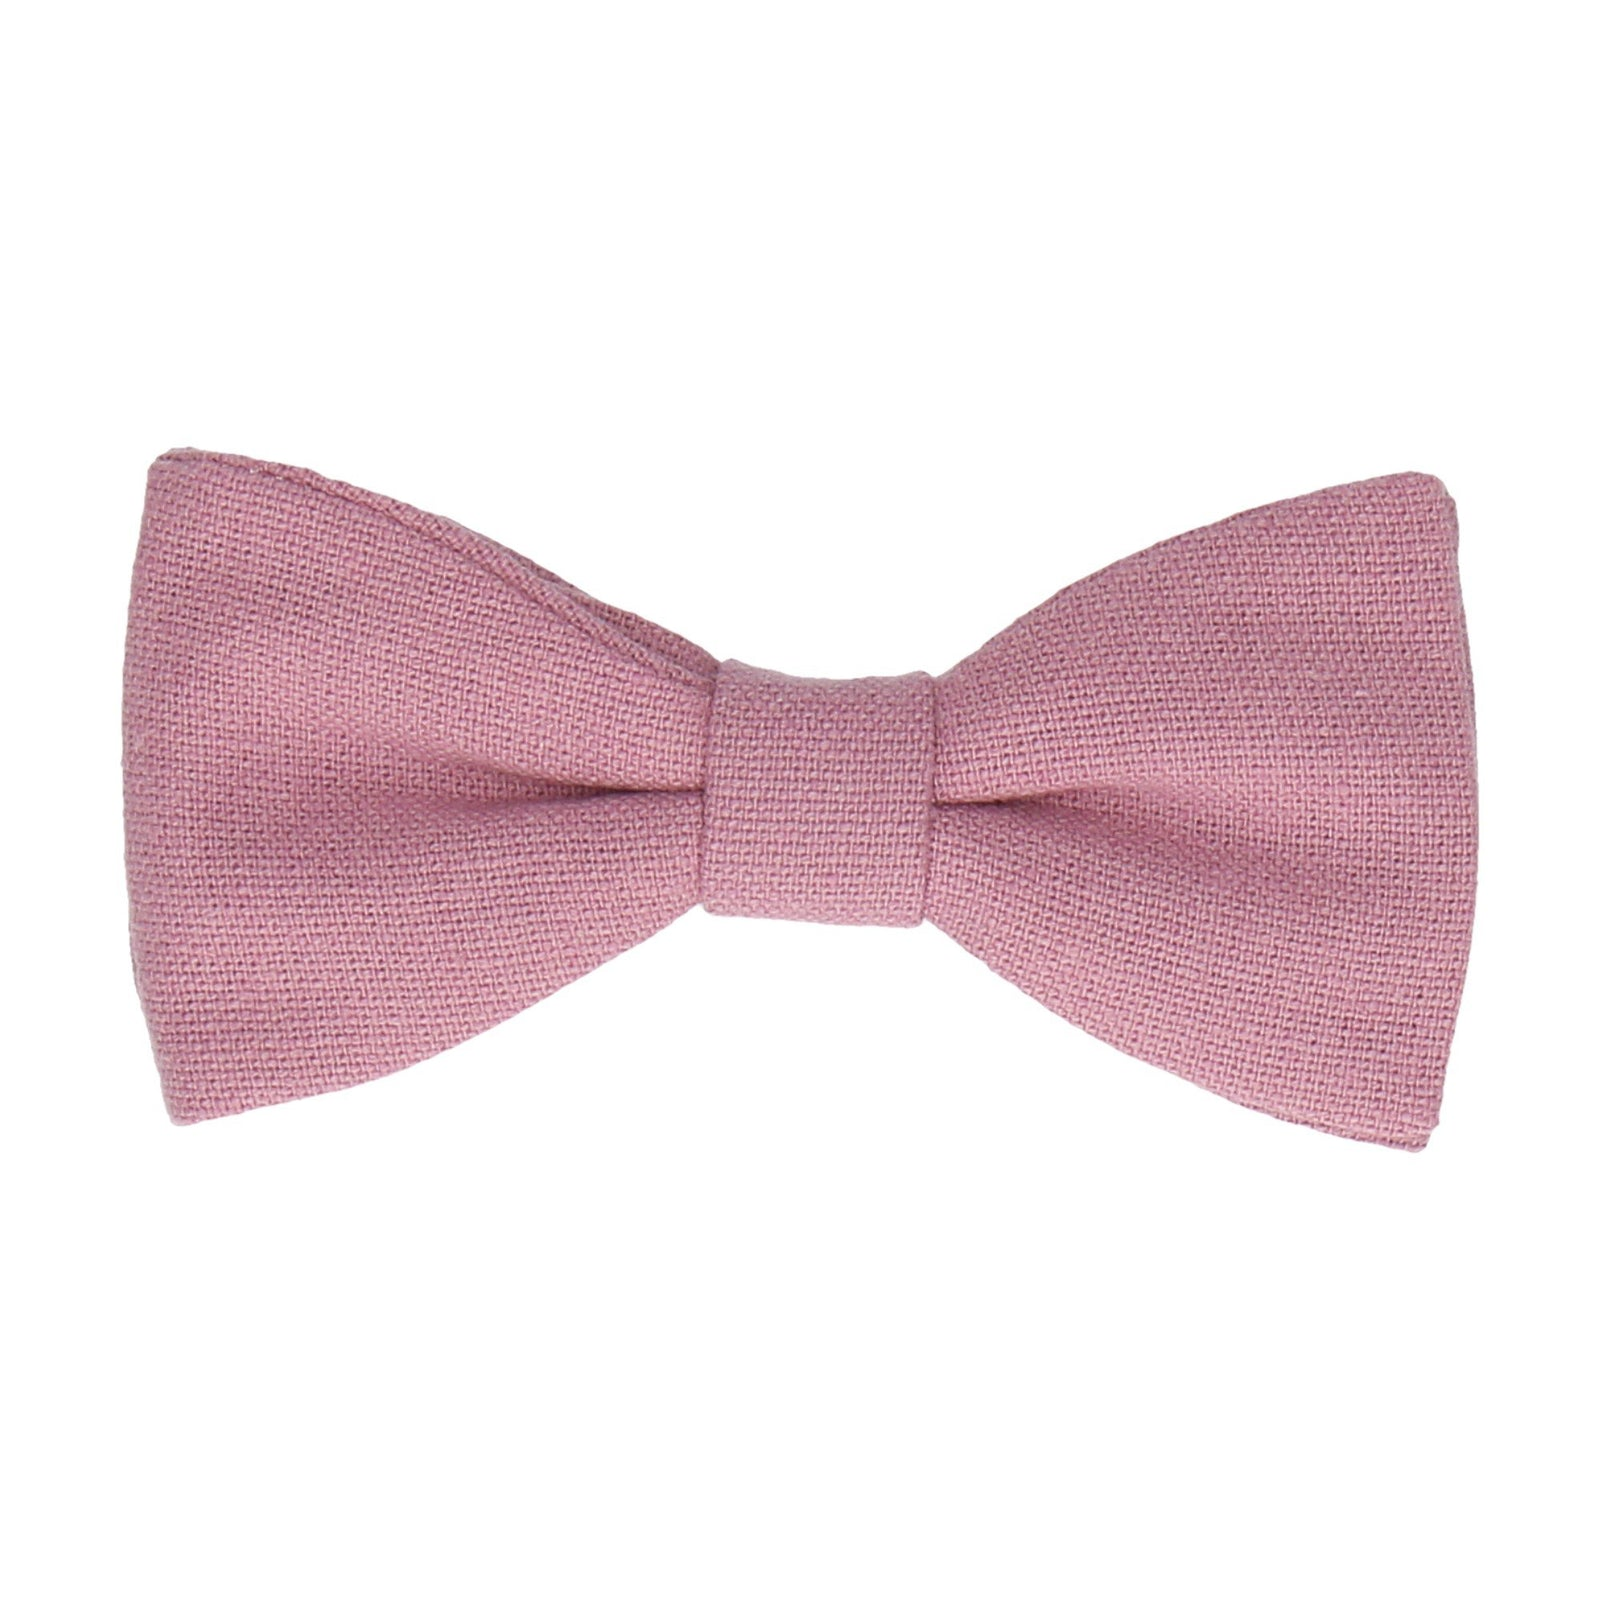 Powder Pink Linen Bow Tie